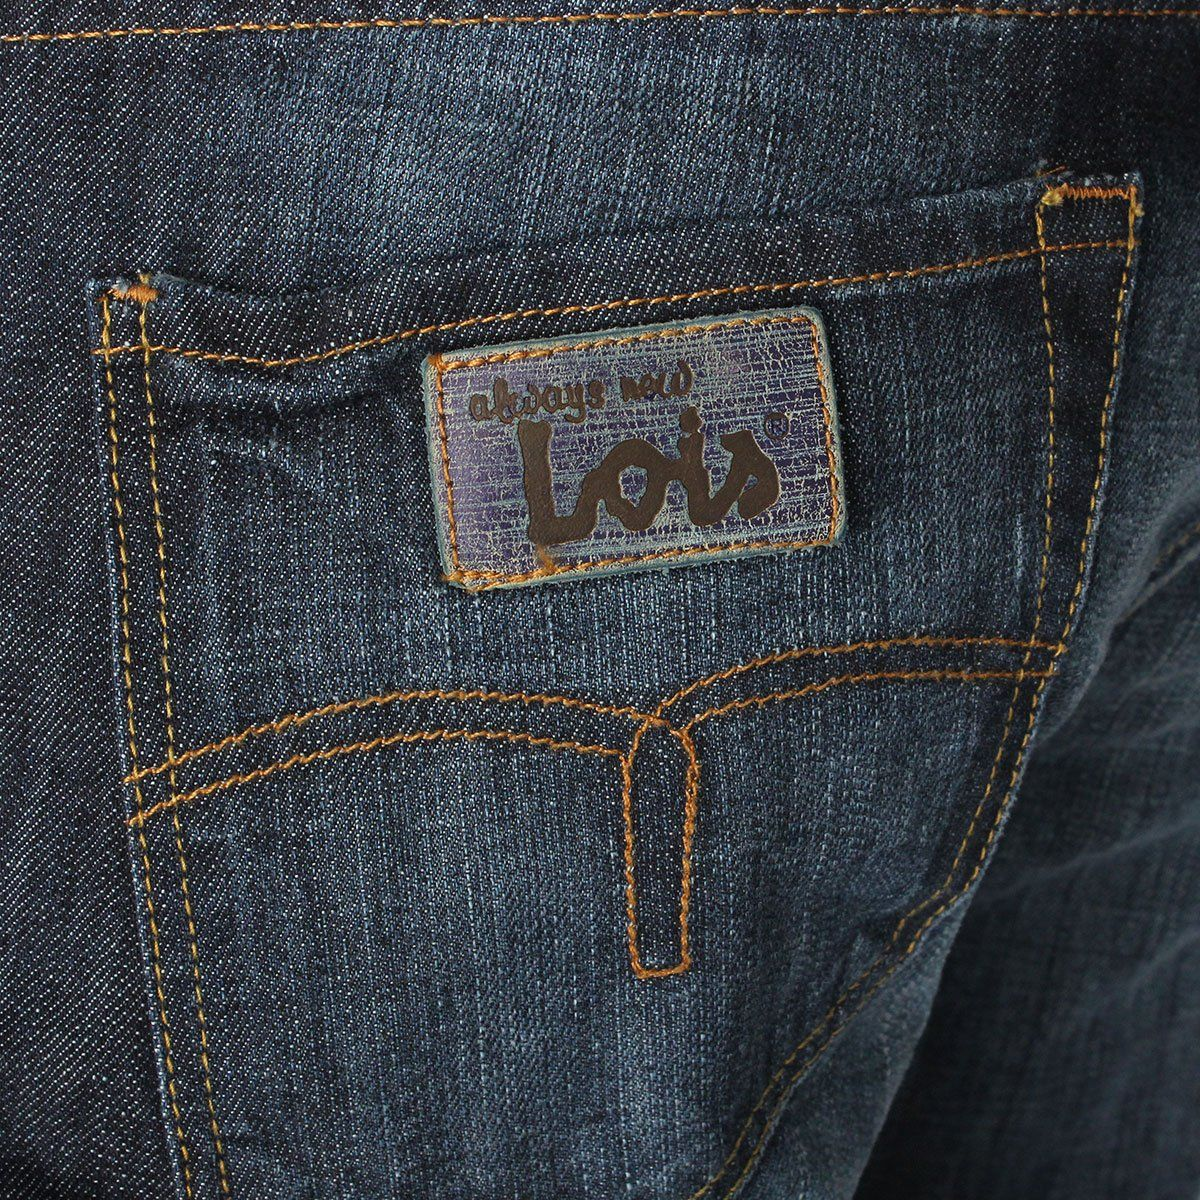 Lois Jeans Very Simply And Fit Men S Denim Style Leather Jeans Mens Jeans